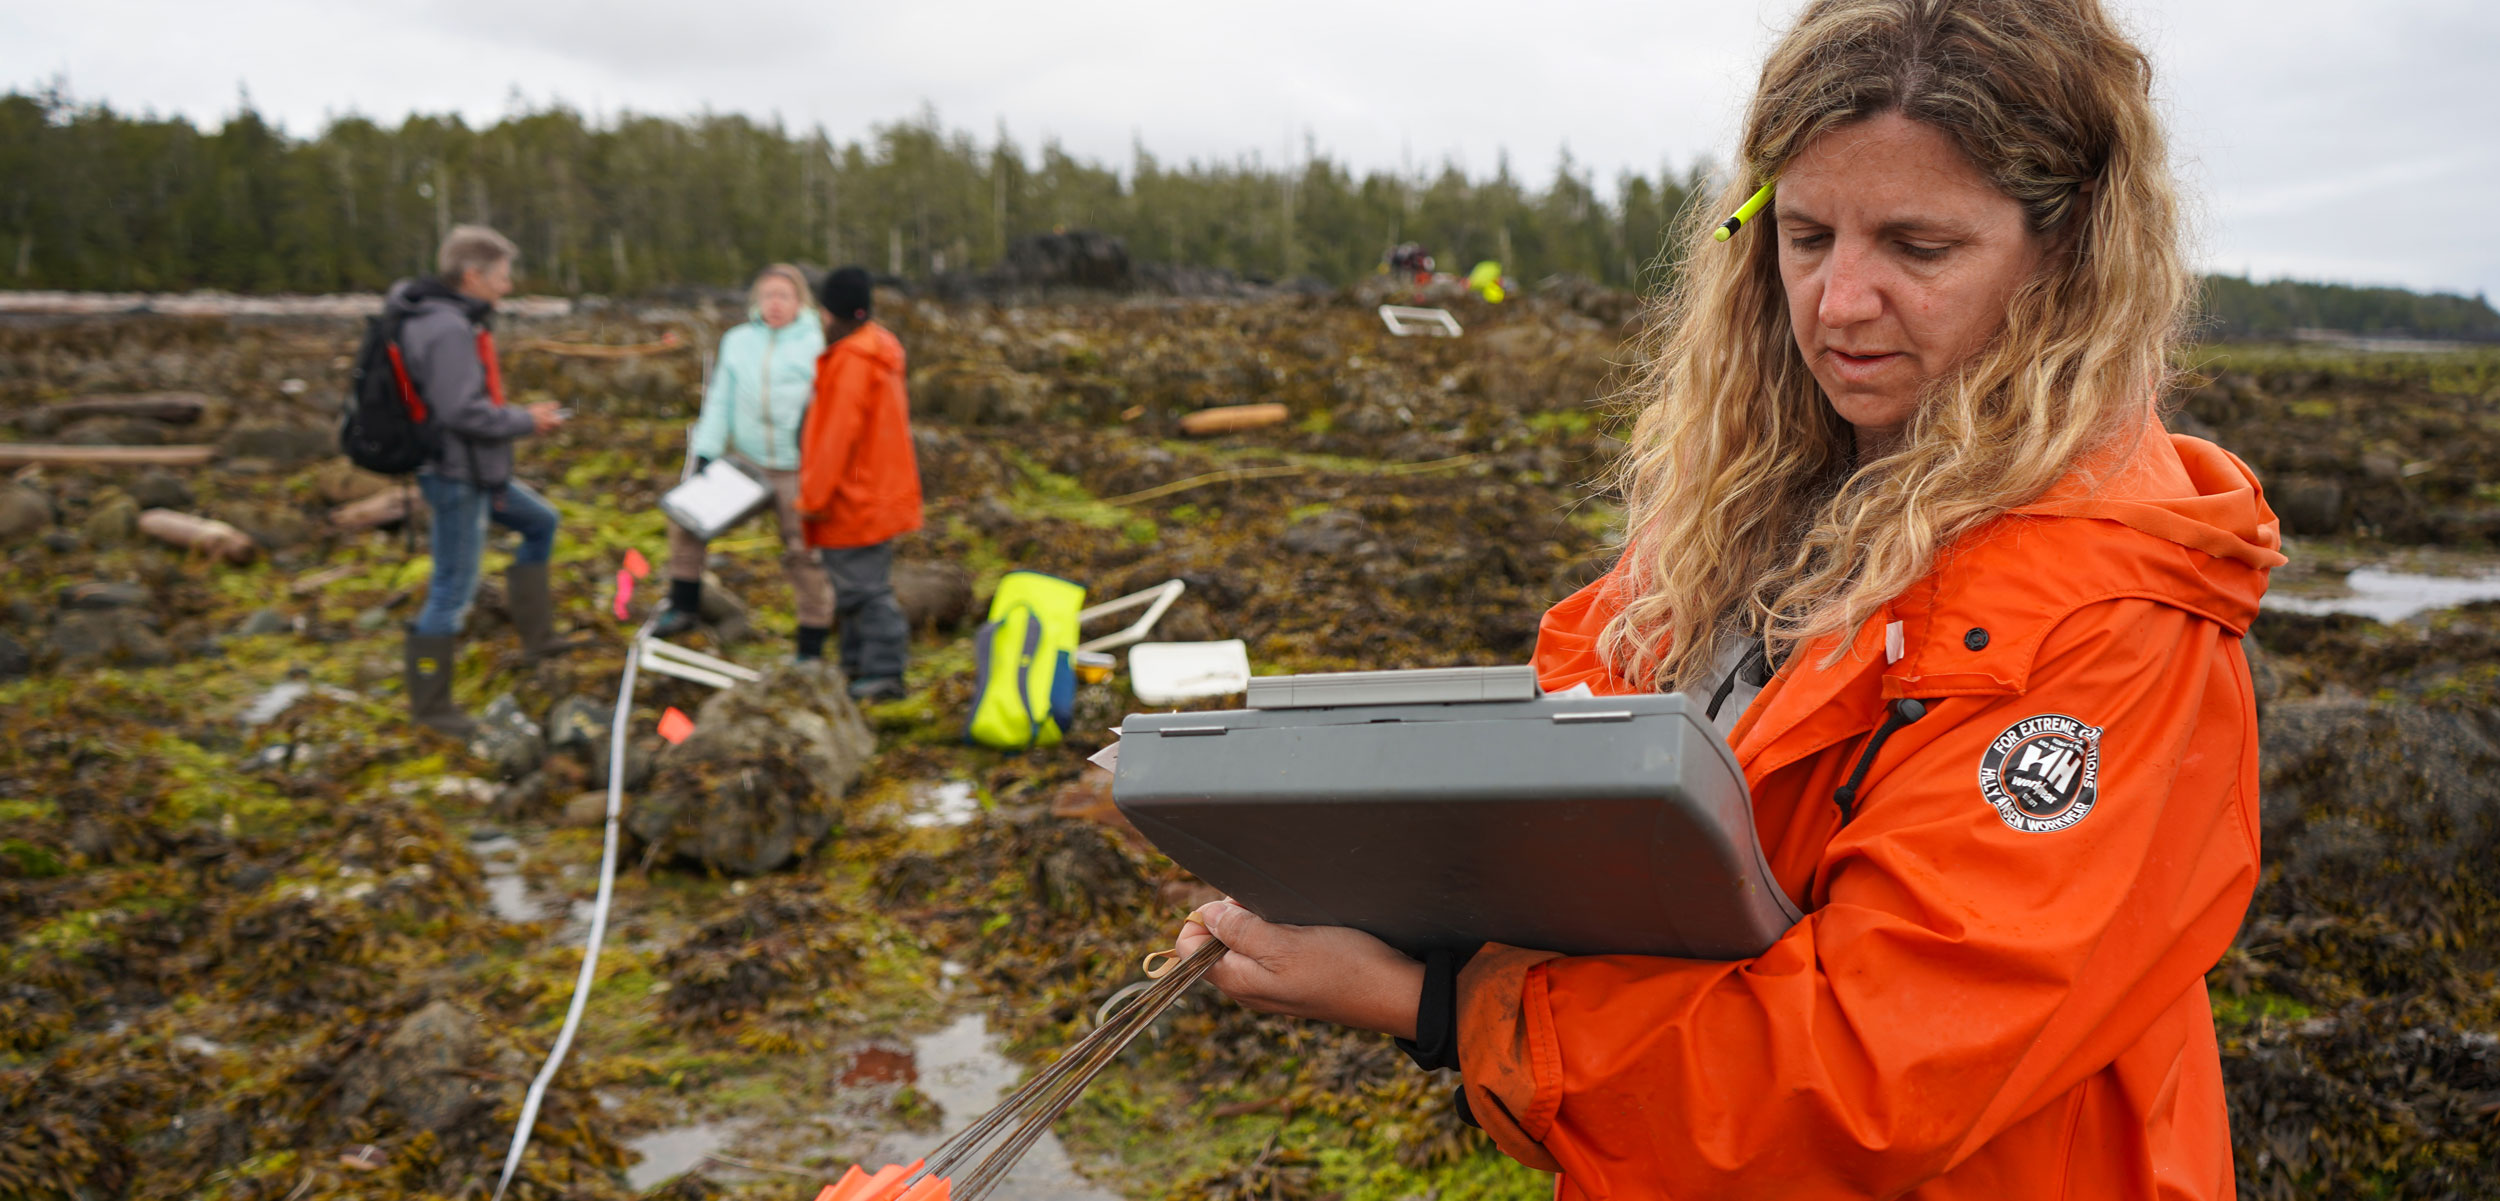 Michelle Bigg, integrated responses planning program head for Fisheries and Oceans Canada, records data at an intertidal site on Goose Island, British Columbia